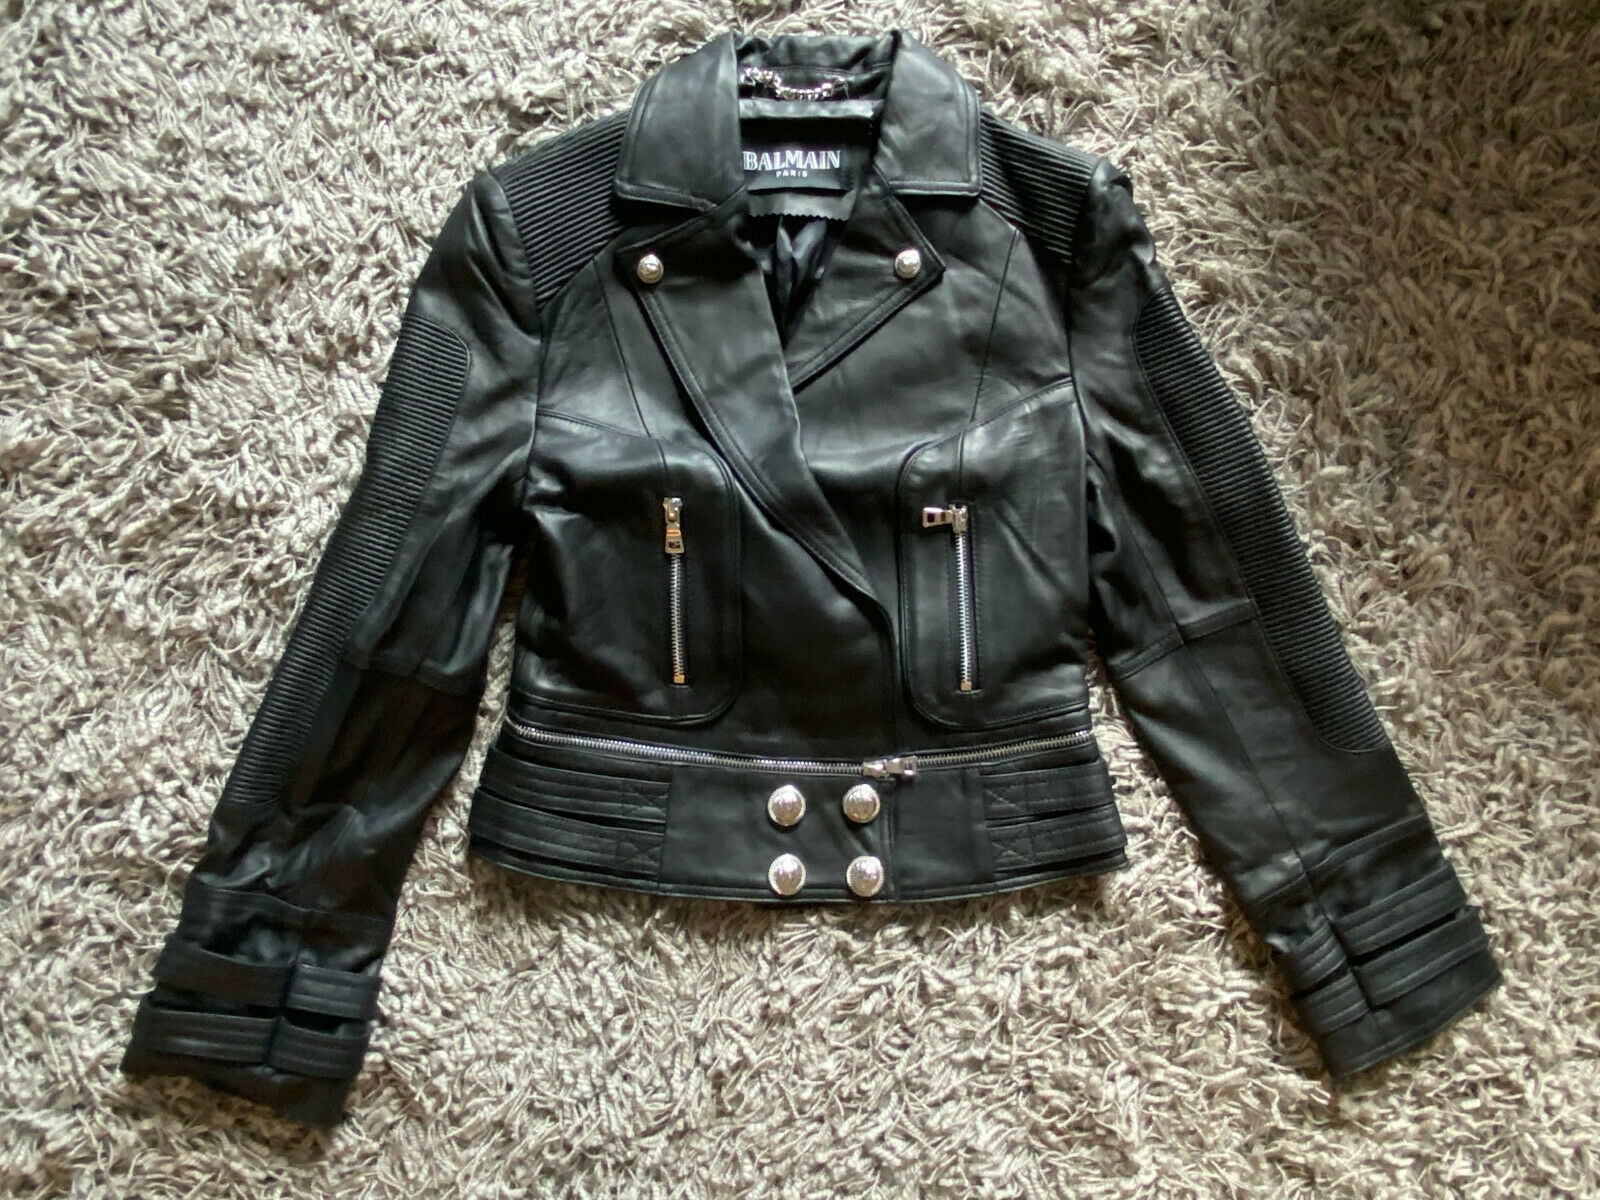 Balmain Womens Black Sheepskin Leather Jacket Top with Crest at back small